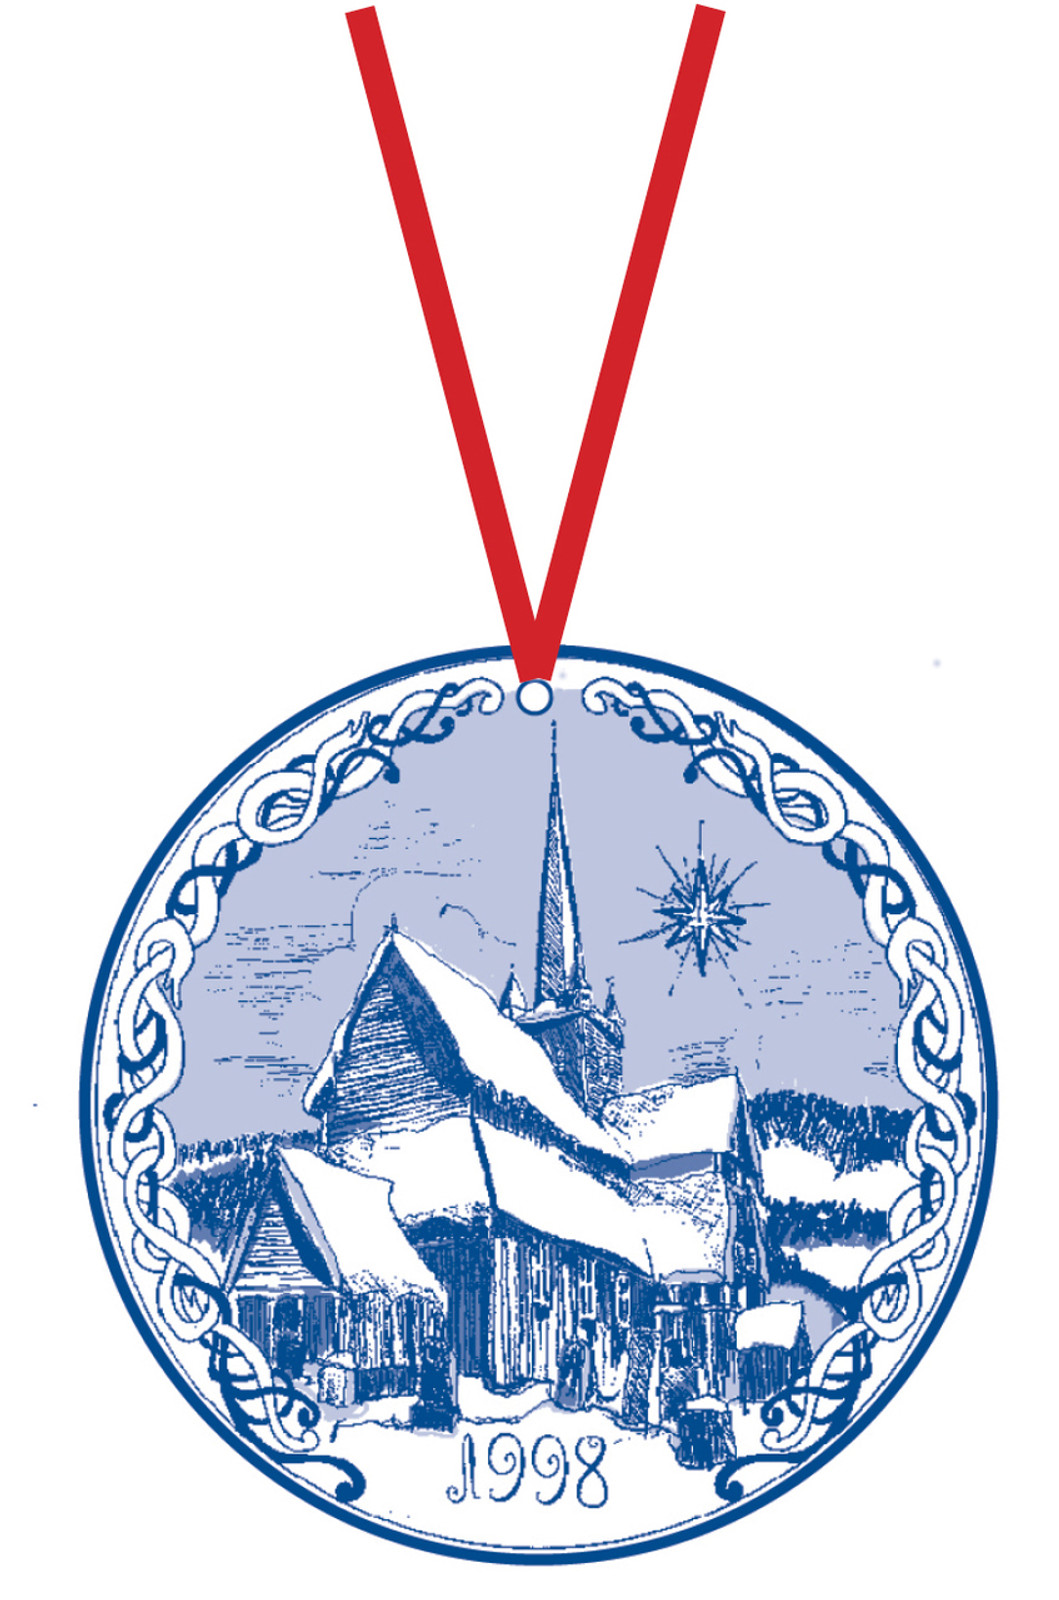 1998 Stav Church Ornament - Ringebu. Made by Norse Traditions and available at The Nordic Shop.